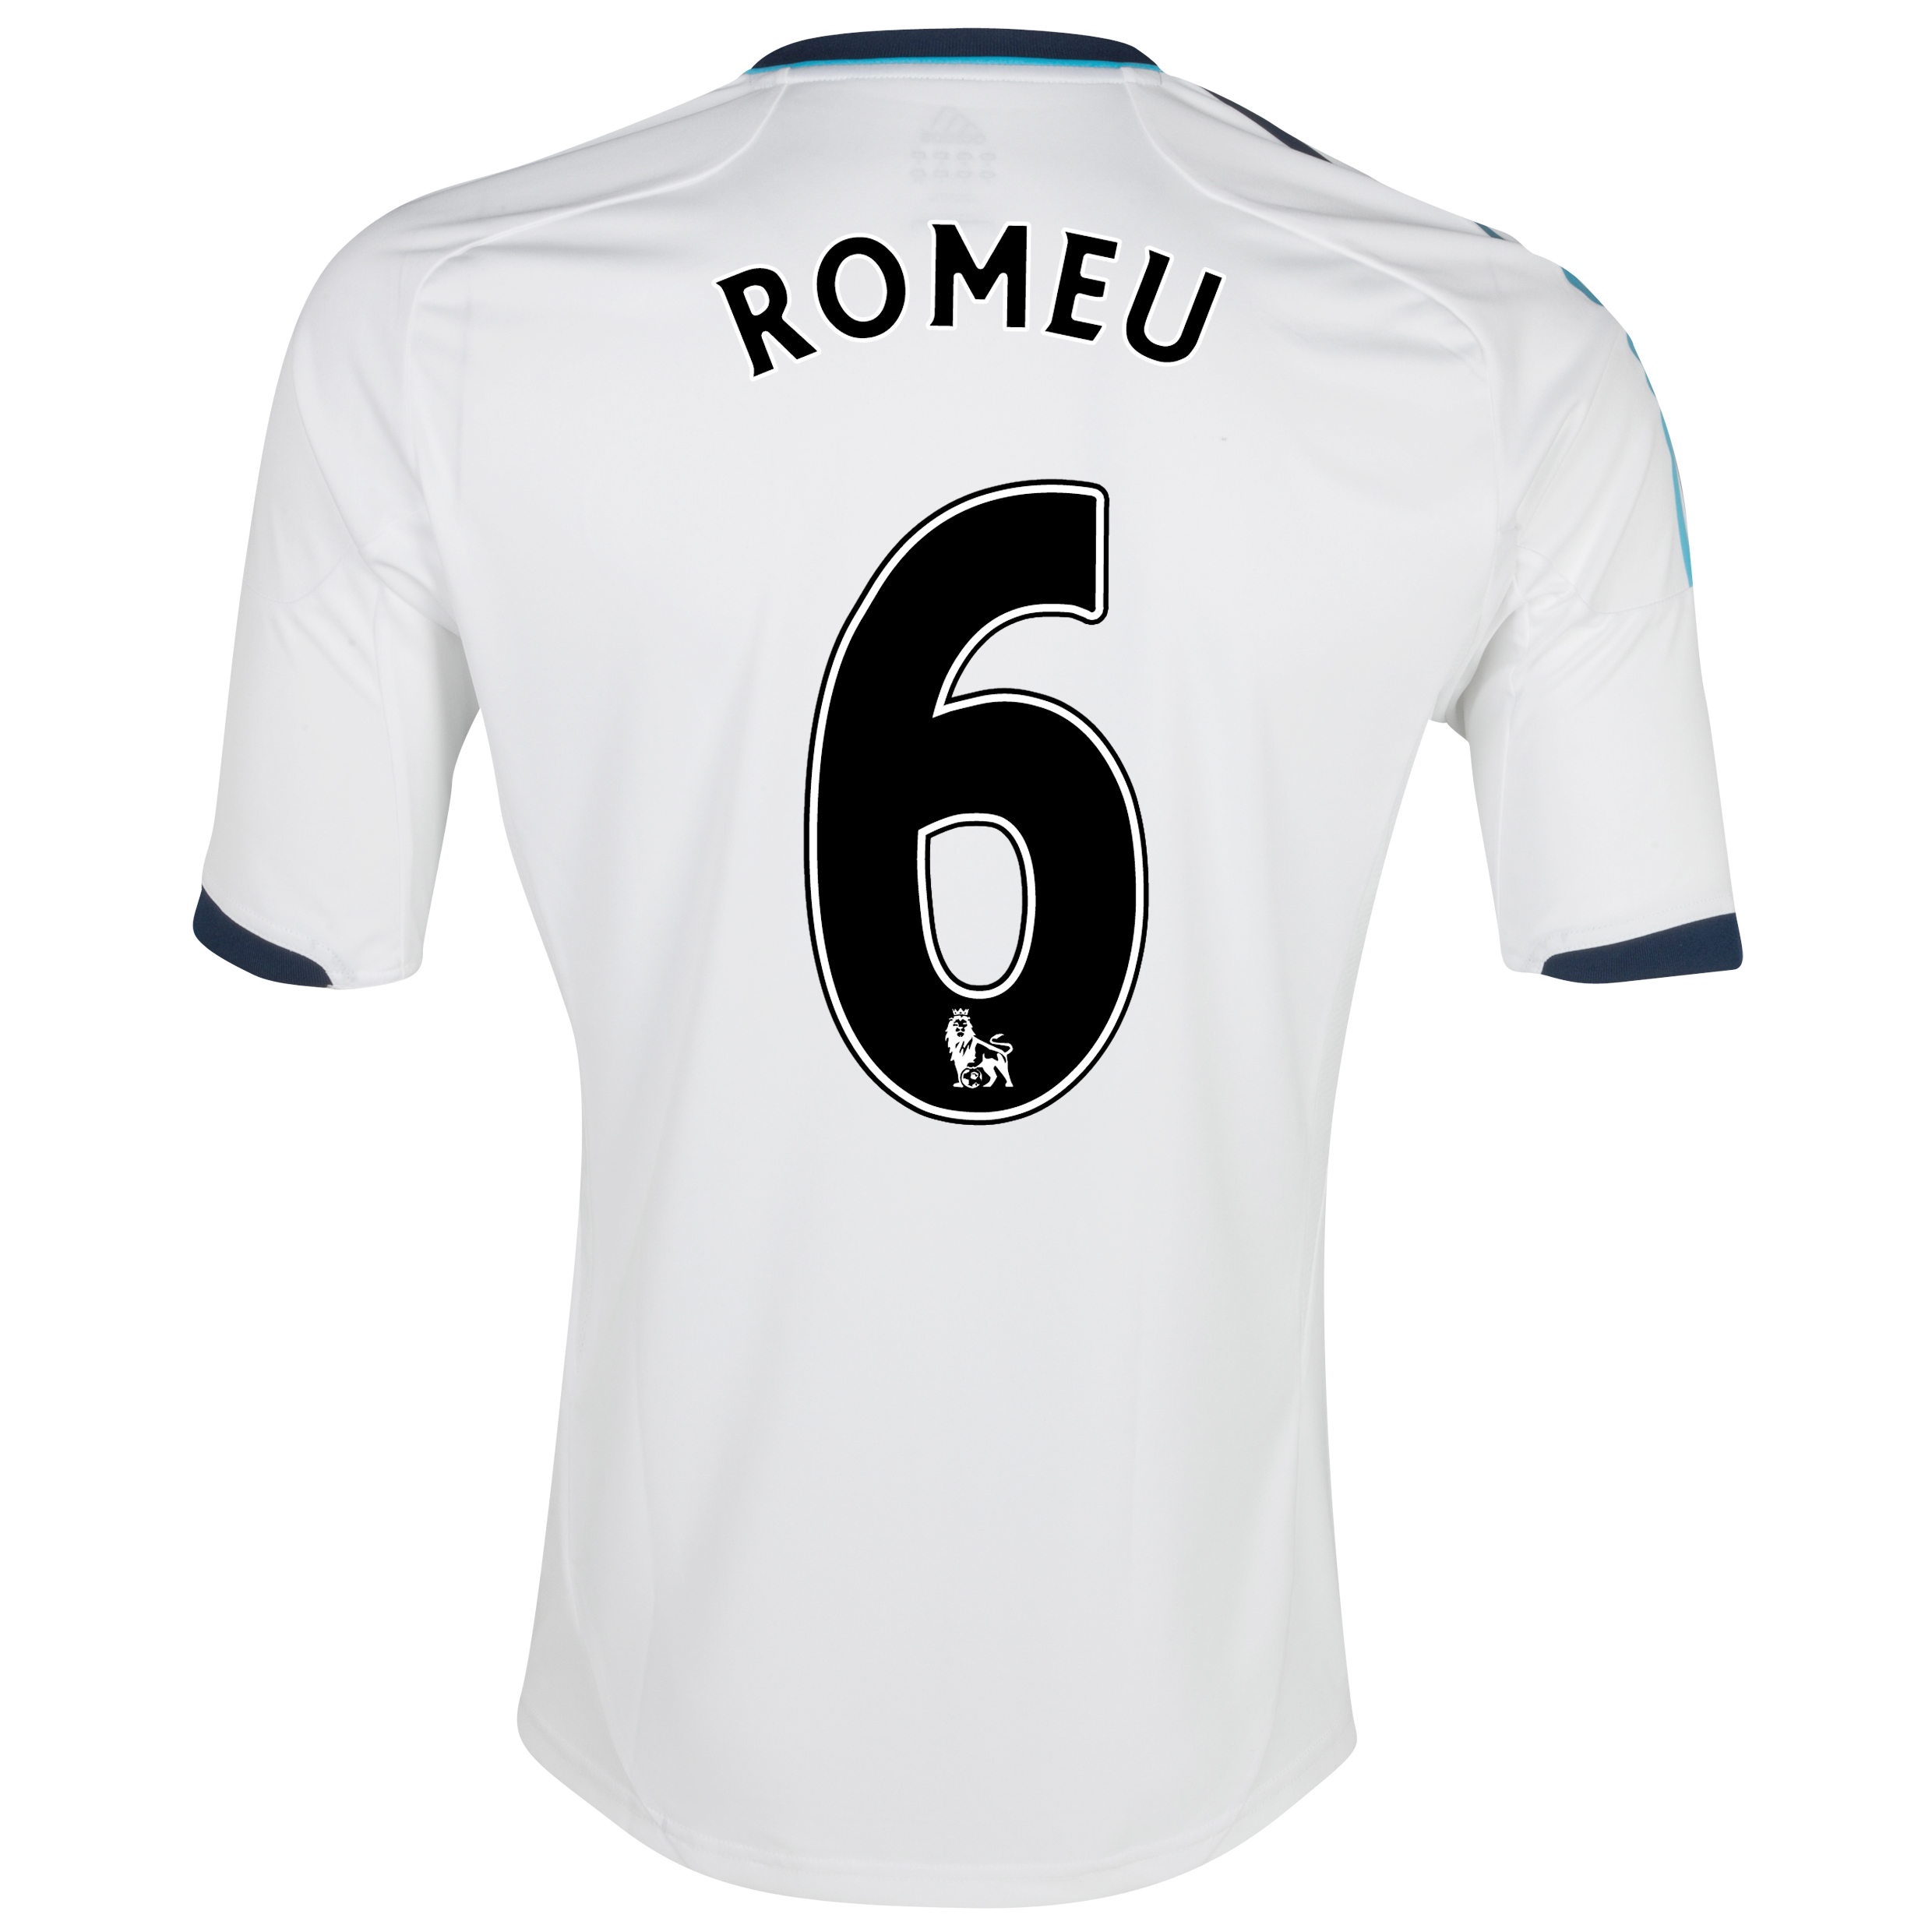 Chelsea Away Shirt 2012/13 with Romeu 6 printing